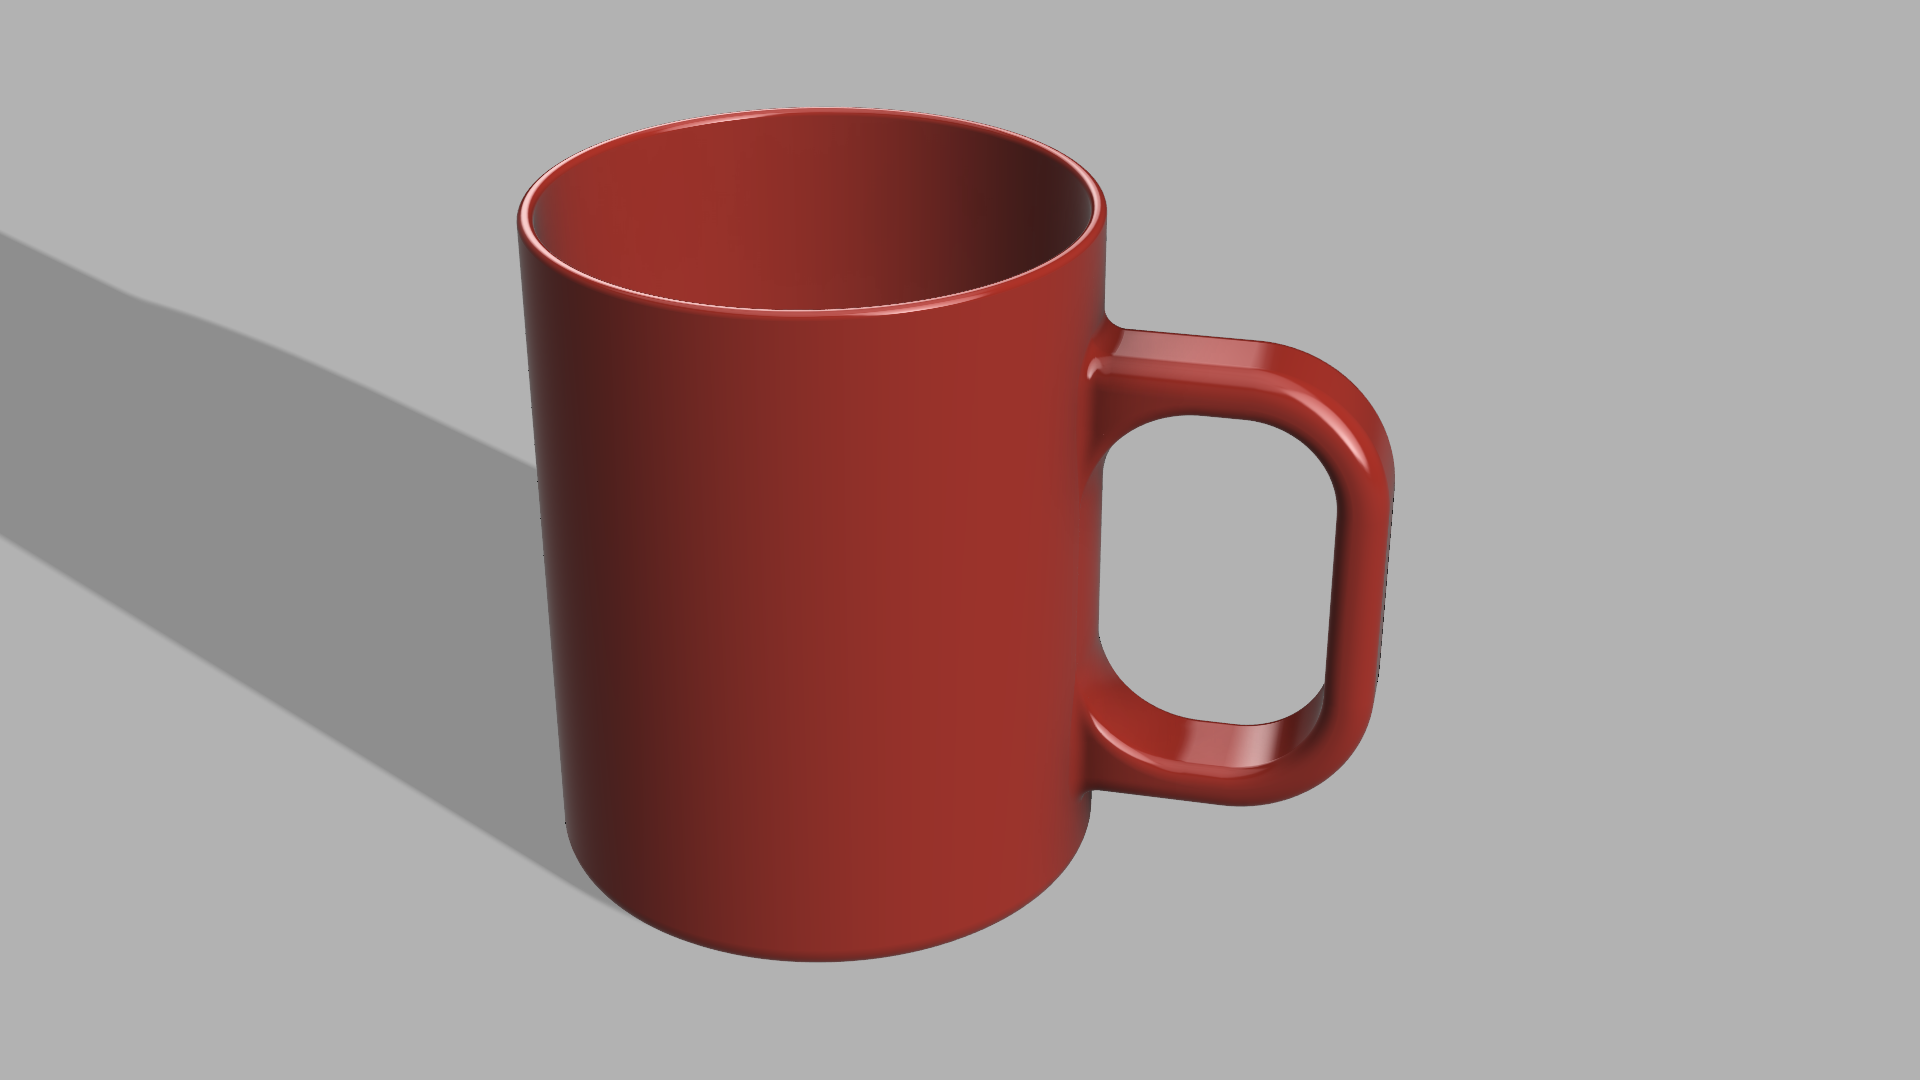 Cup by PDesigner.png Download free STL file Styling Mug for Coffee & Tea • Template to 3D print, PDesigner